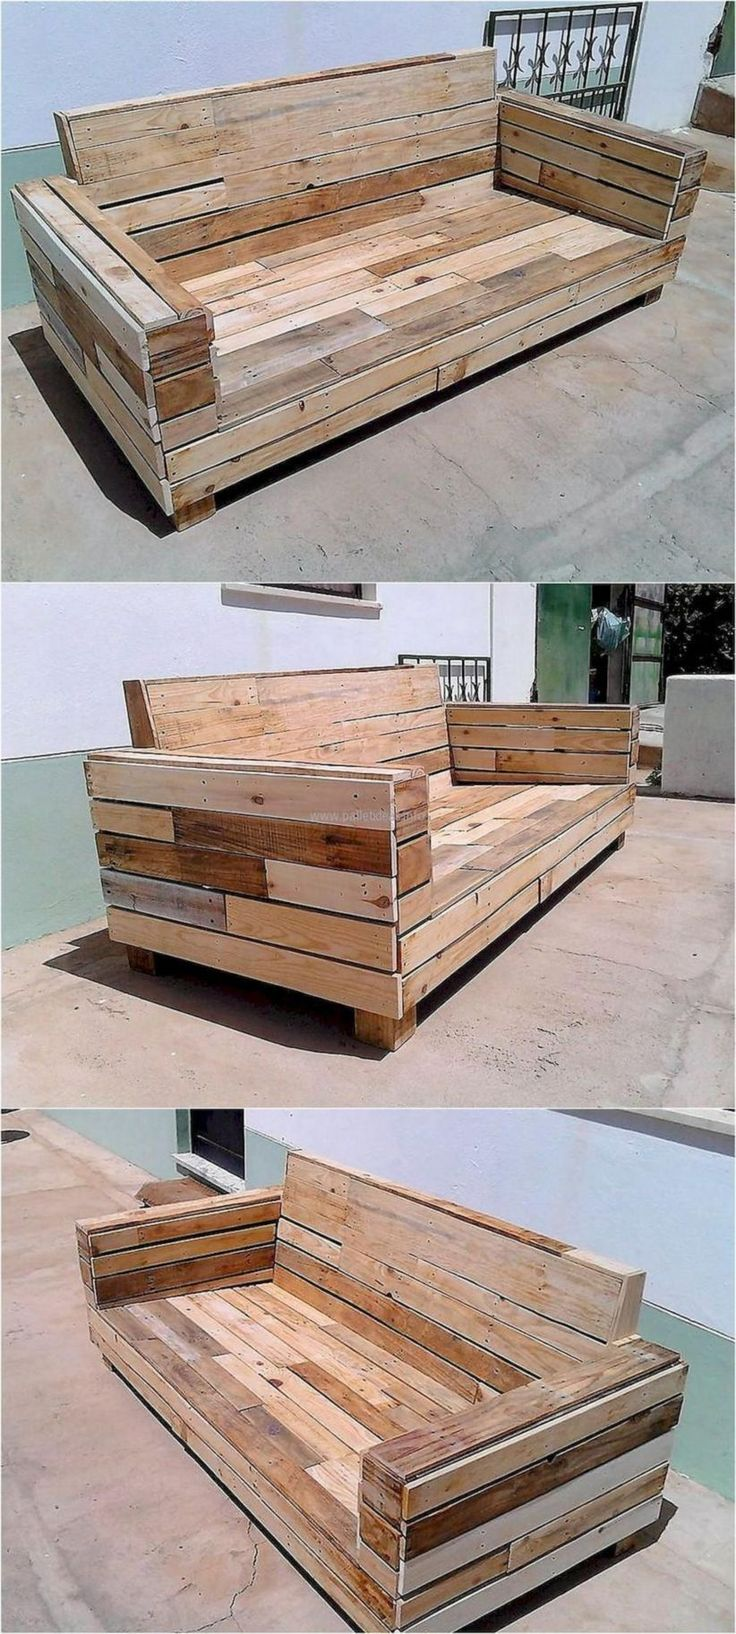 nice 39 Furniture Pallet Projects You Can DIY for Your Home https://matchness.com/2017/12/16/39-furniture-pallet-projects-can-diy-home/ #homefurniture2017